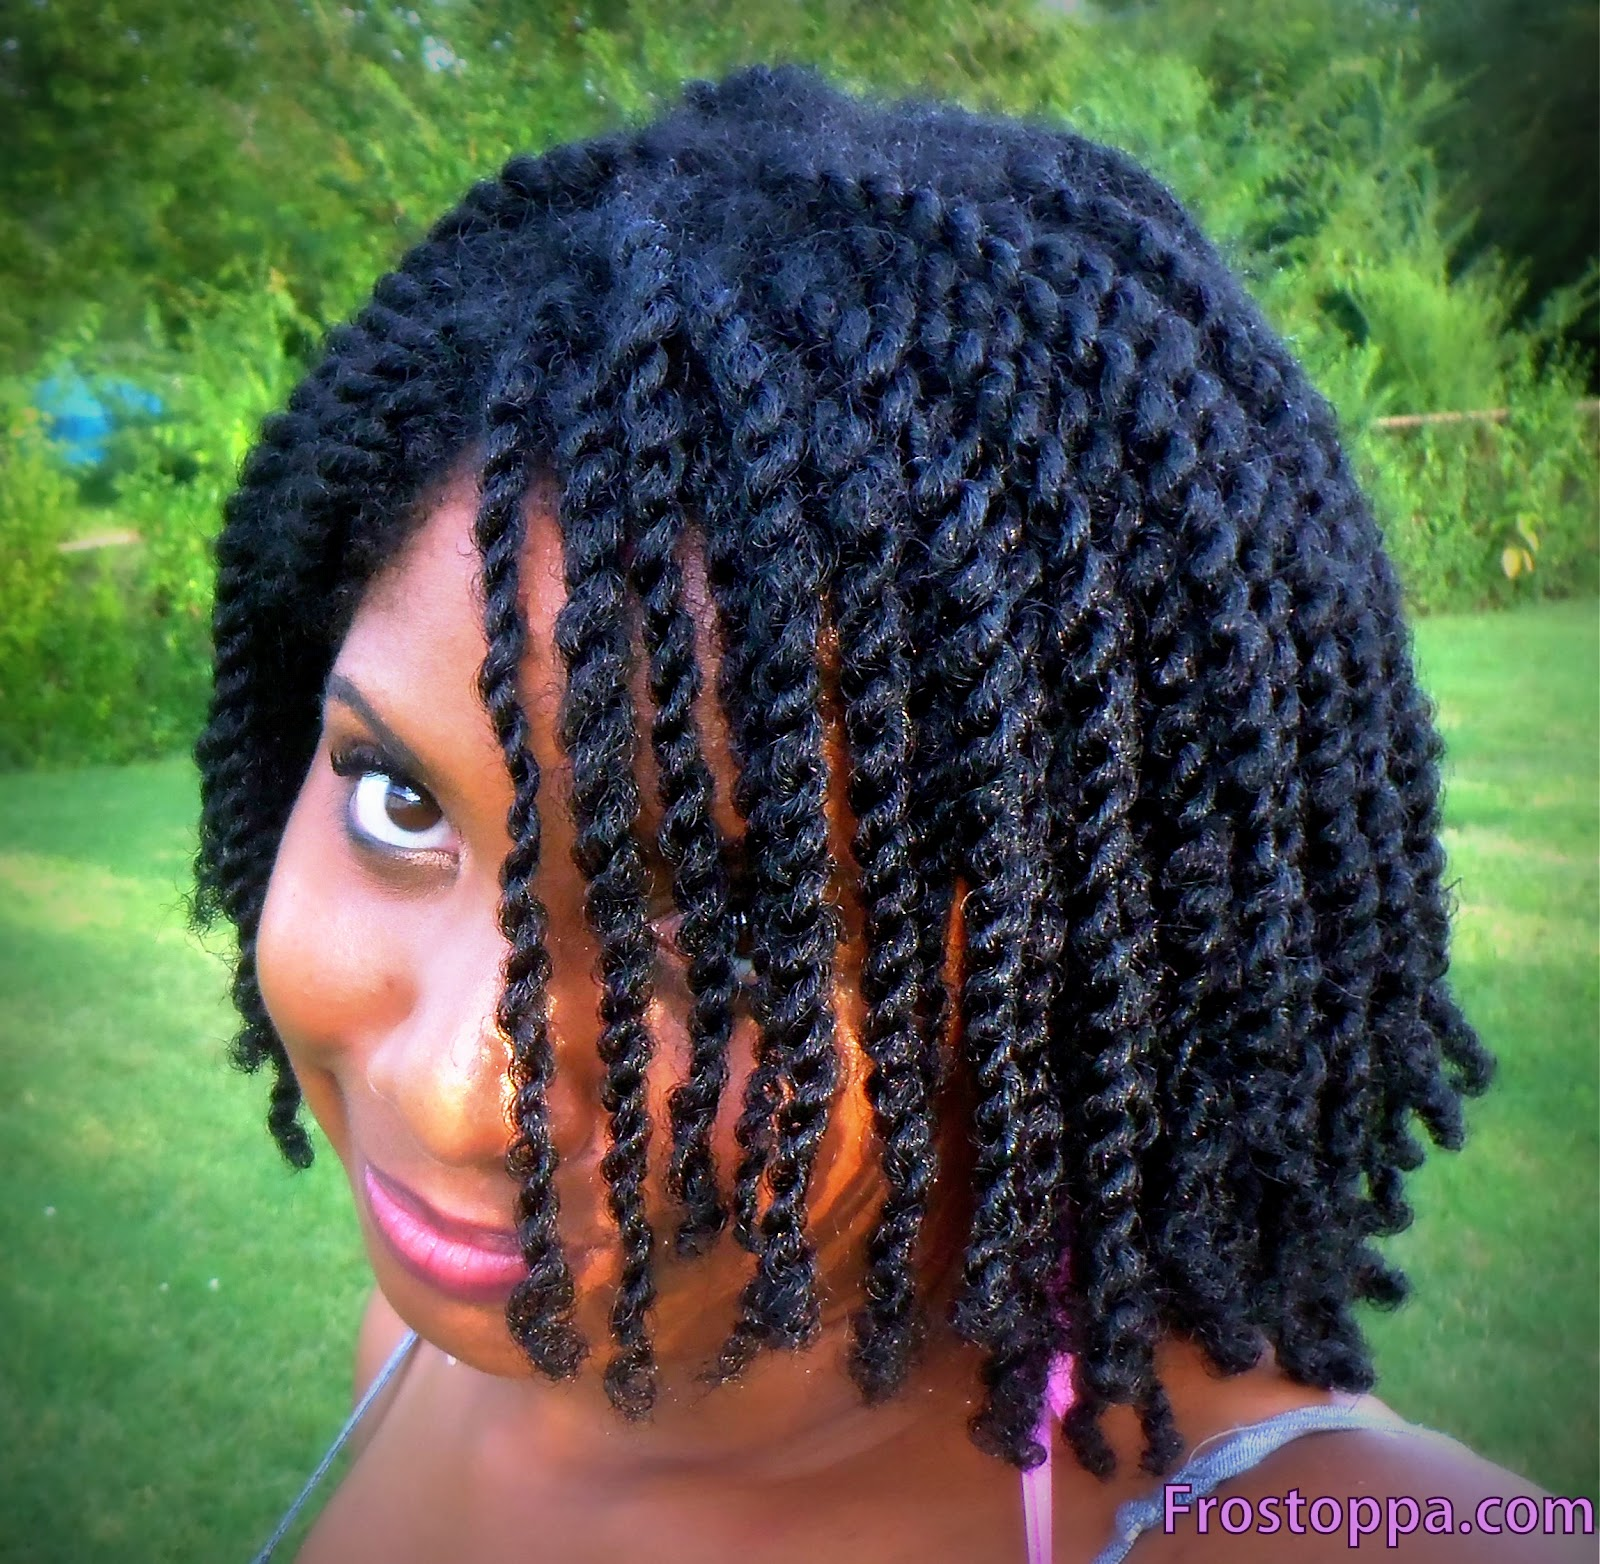 styling s hair mini twists protective style frostoppa ms gg s 1513